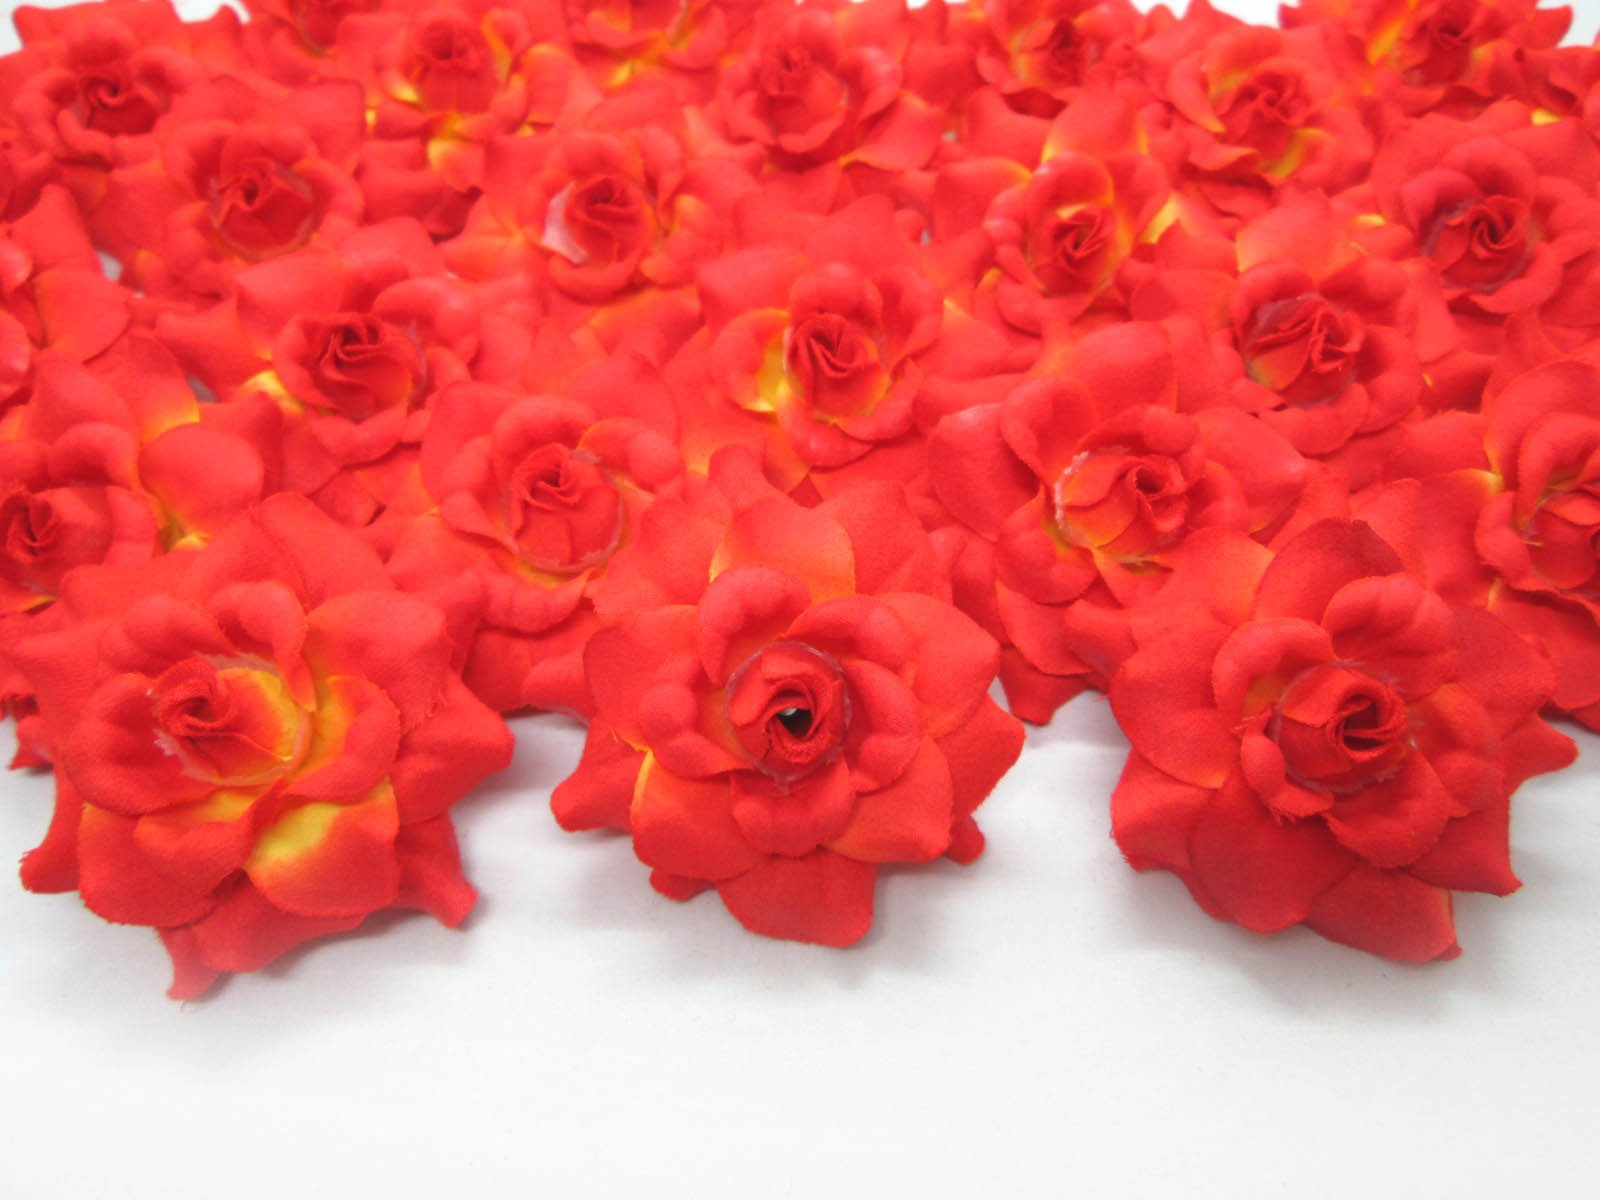 100-Silk-Orange-Roses-Flower-Head-175-Artificial-Flowers-Heads-Fabric-Floral-Supplies-Wholesale-Lot-for-Wedding-Flowers-Accessories-Make-Bridal-Hair-Clips-Headbands-Dress